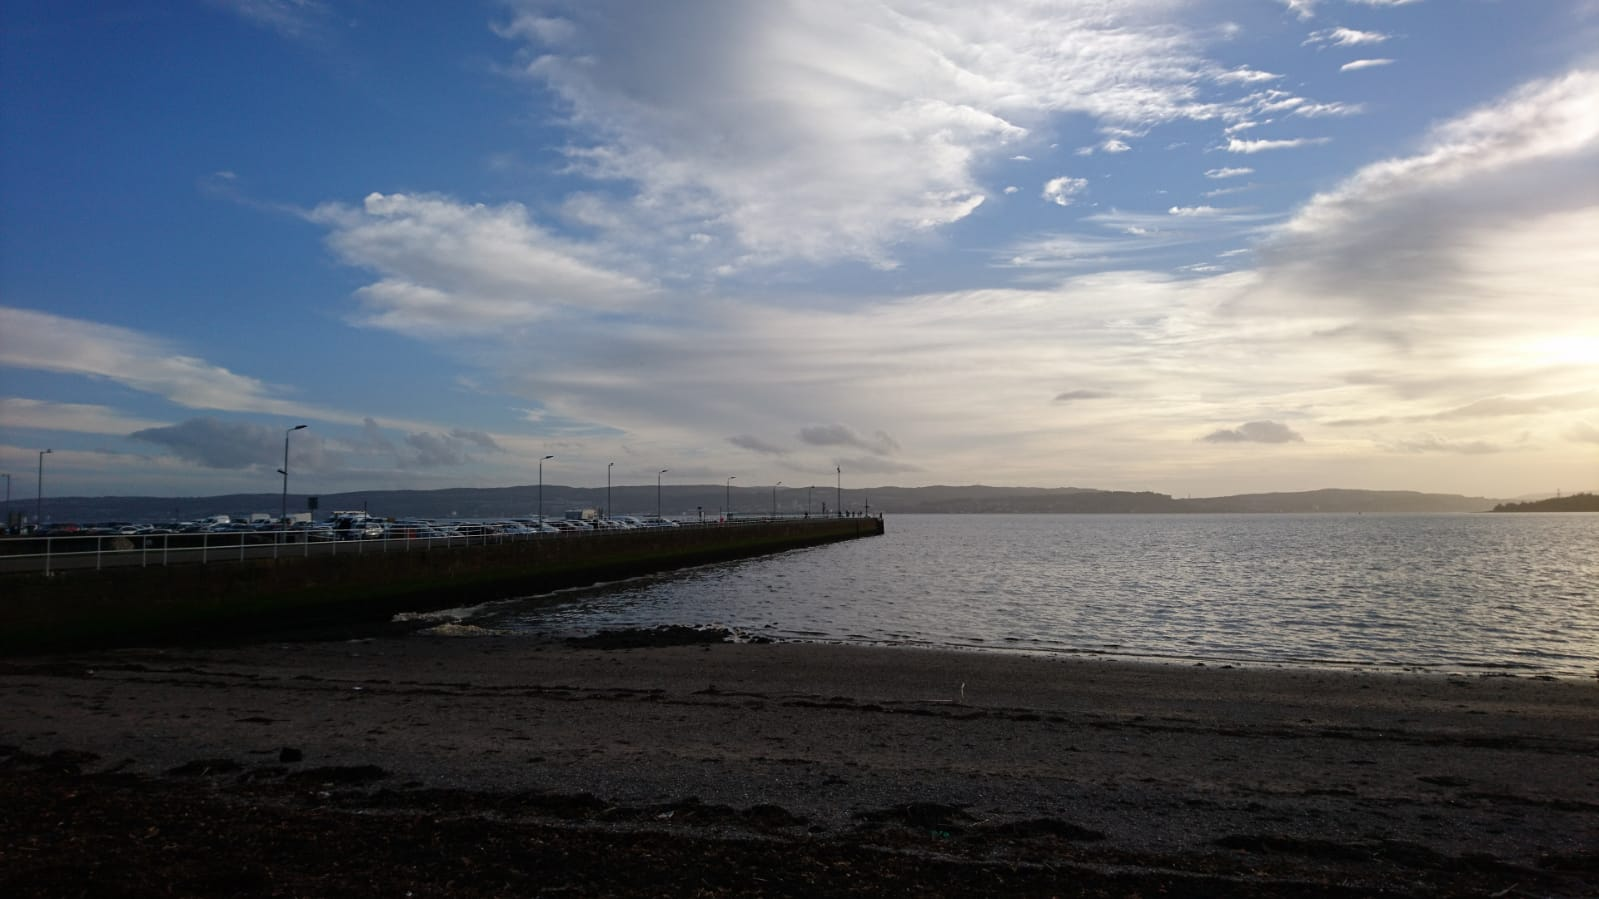 Helensburgh pier, photographed in October 2018